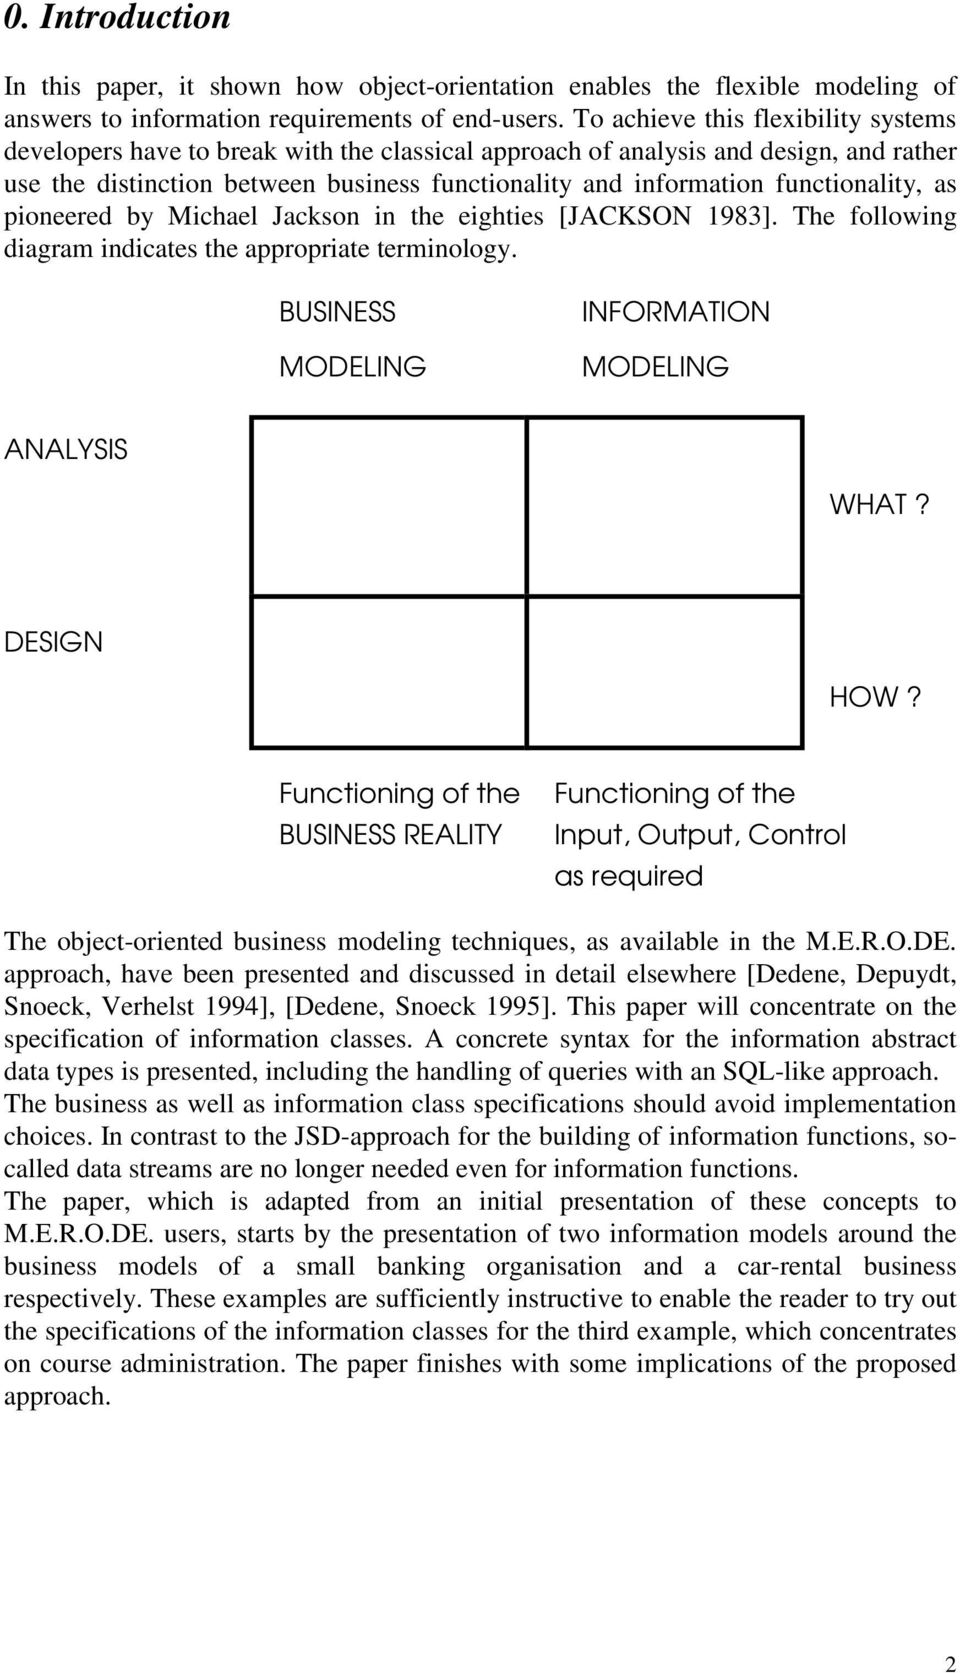 functionality, as pioneered by Michael Jackson in the eighties [JACKSON 1983]. The following diagram indicates the appropriate terminology. BUSINESS MODELING INFORMATION MODELING ANALYSIS WHAT?